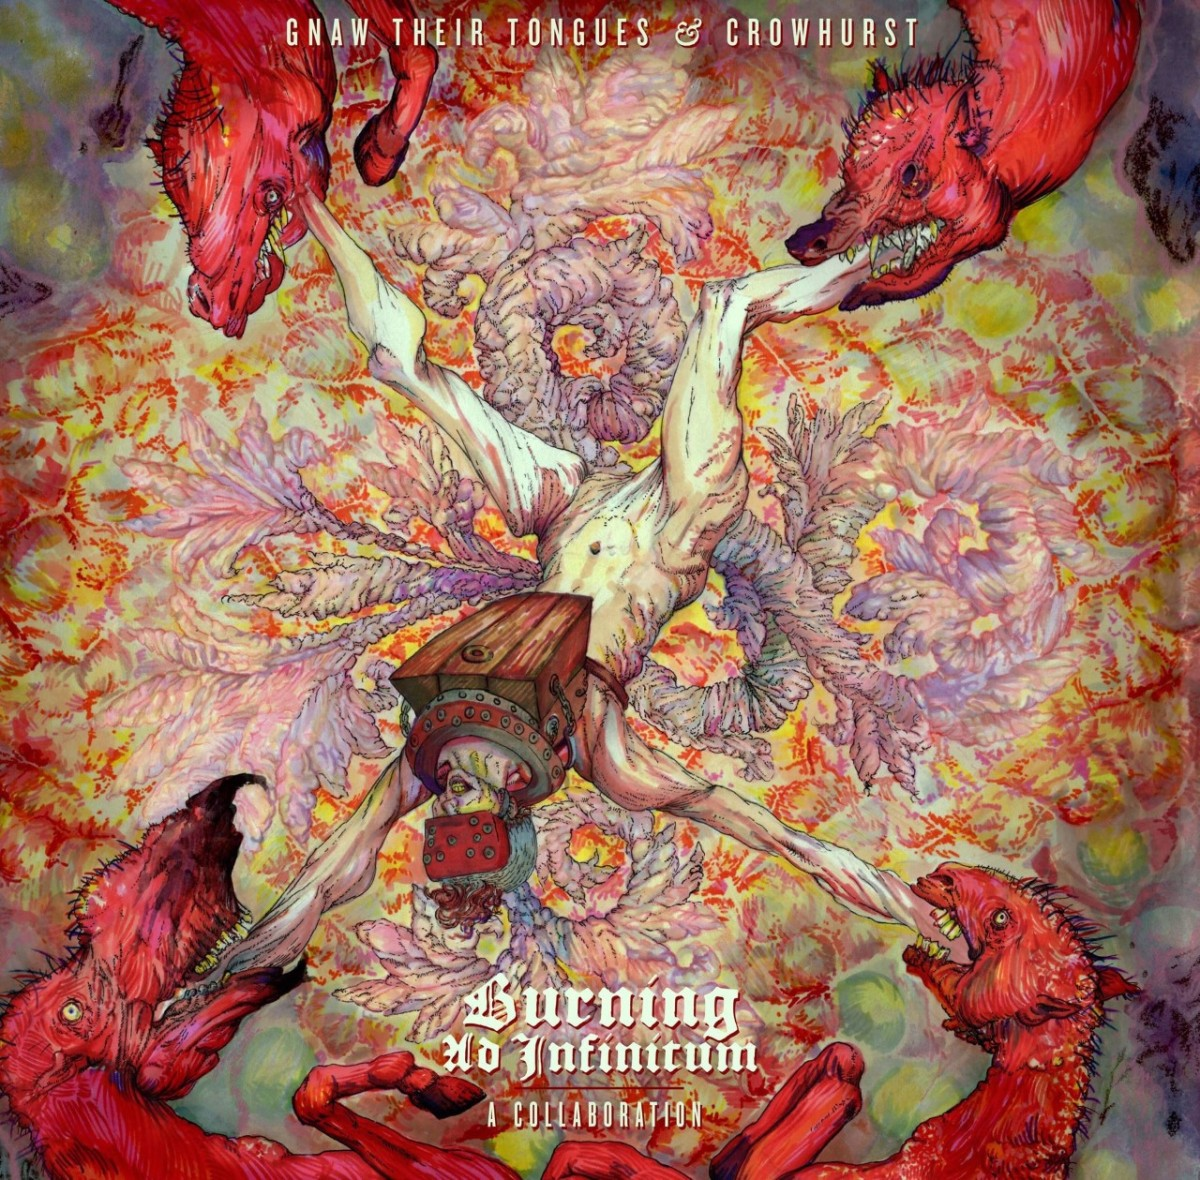 Gnaw Their Tongues & Crowhurst - Burning Ad Infinitum: A Collaboration (Review)